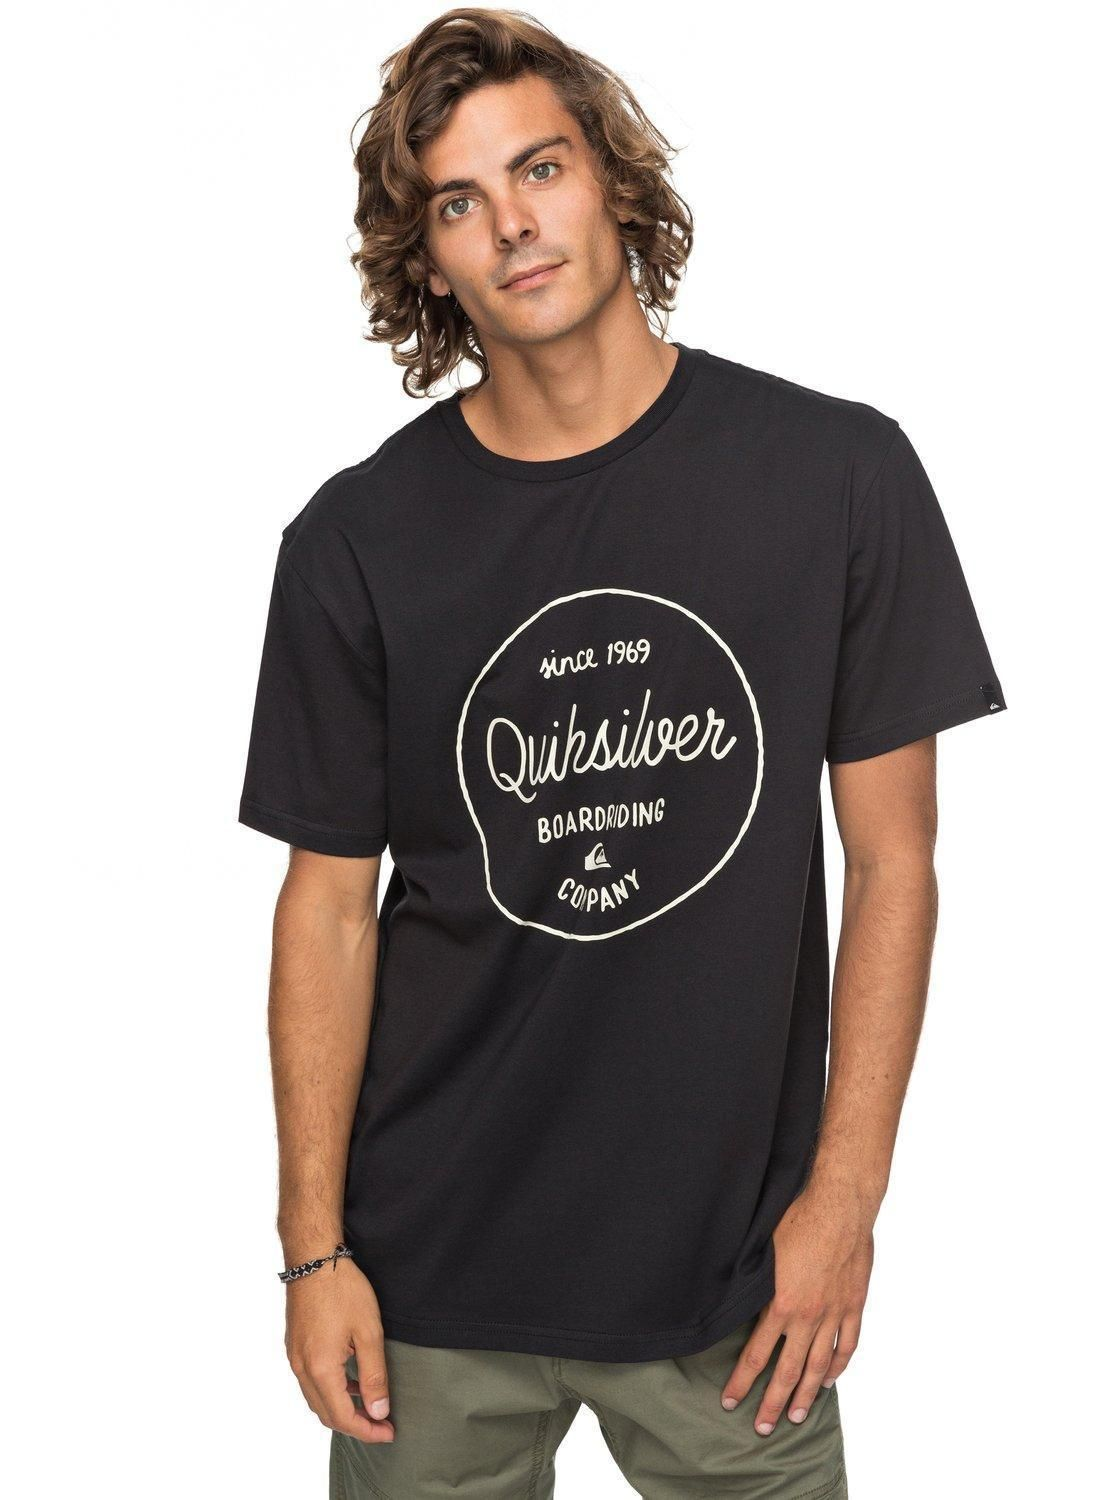 Quiksilver T-Shirts  eBay Clothes, Shoes   Accessories   Estilo de ... 89e3bbc3ae